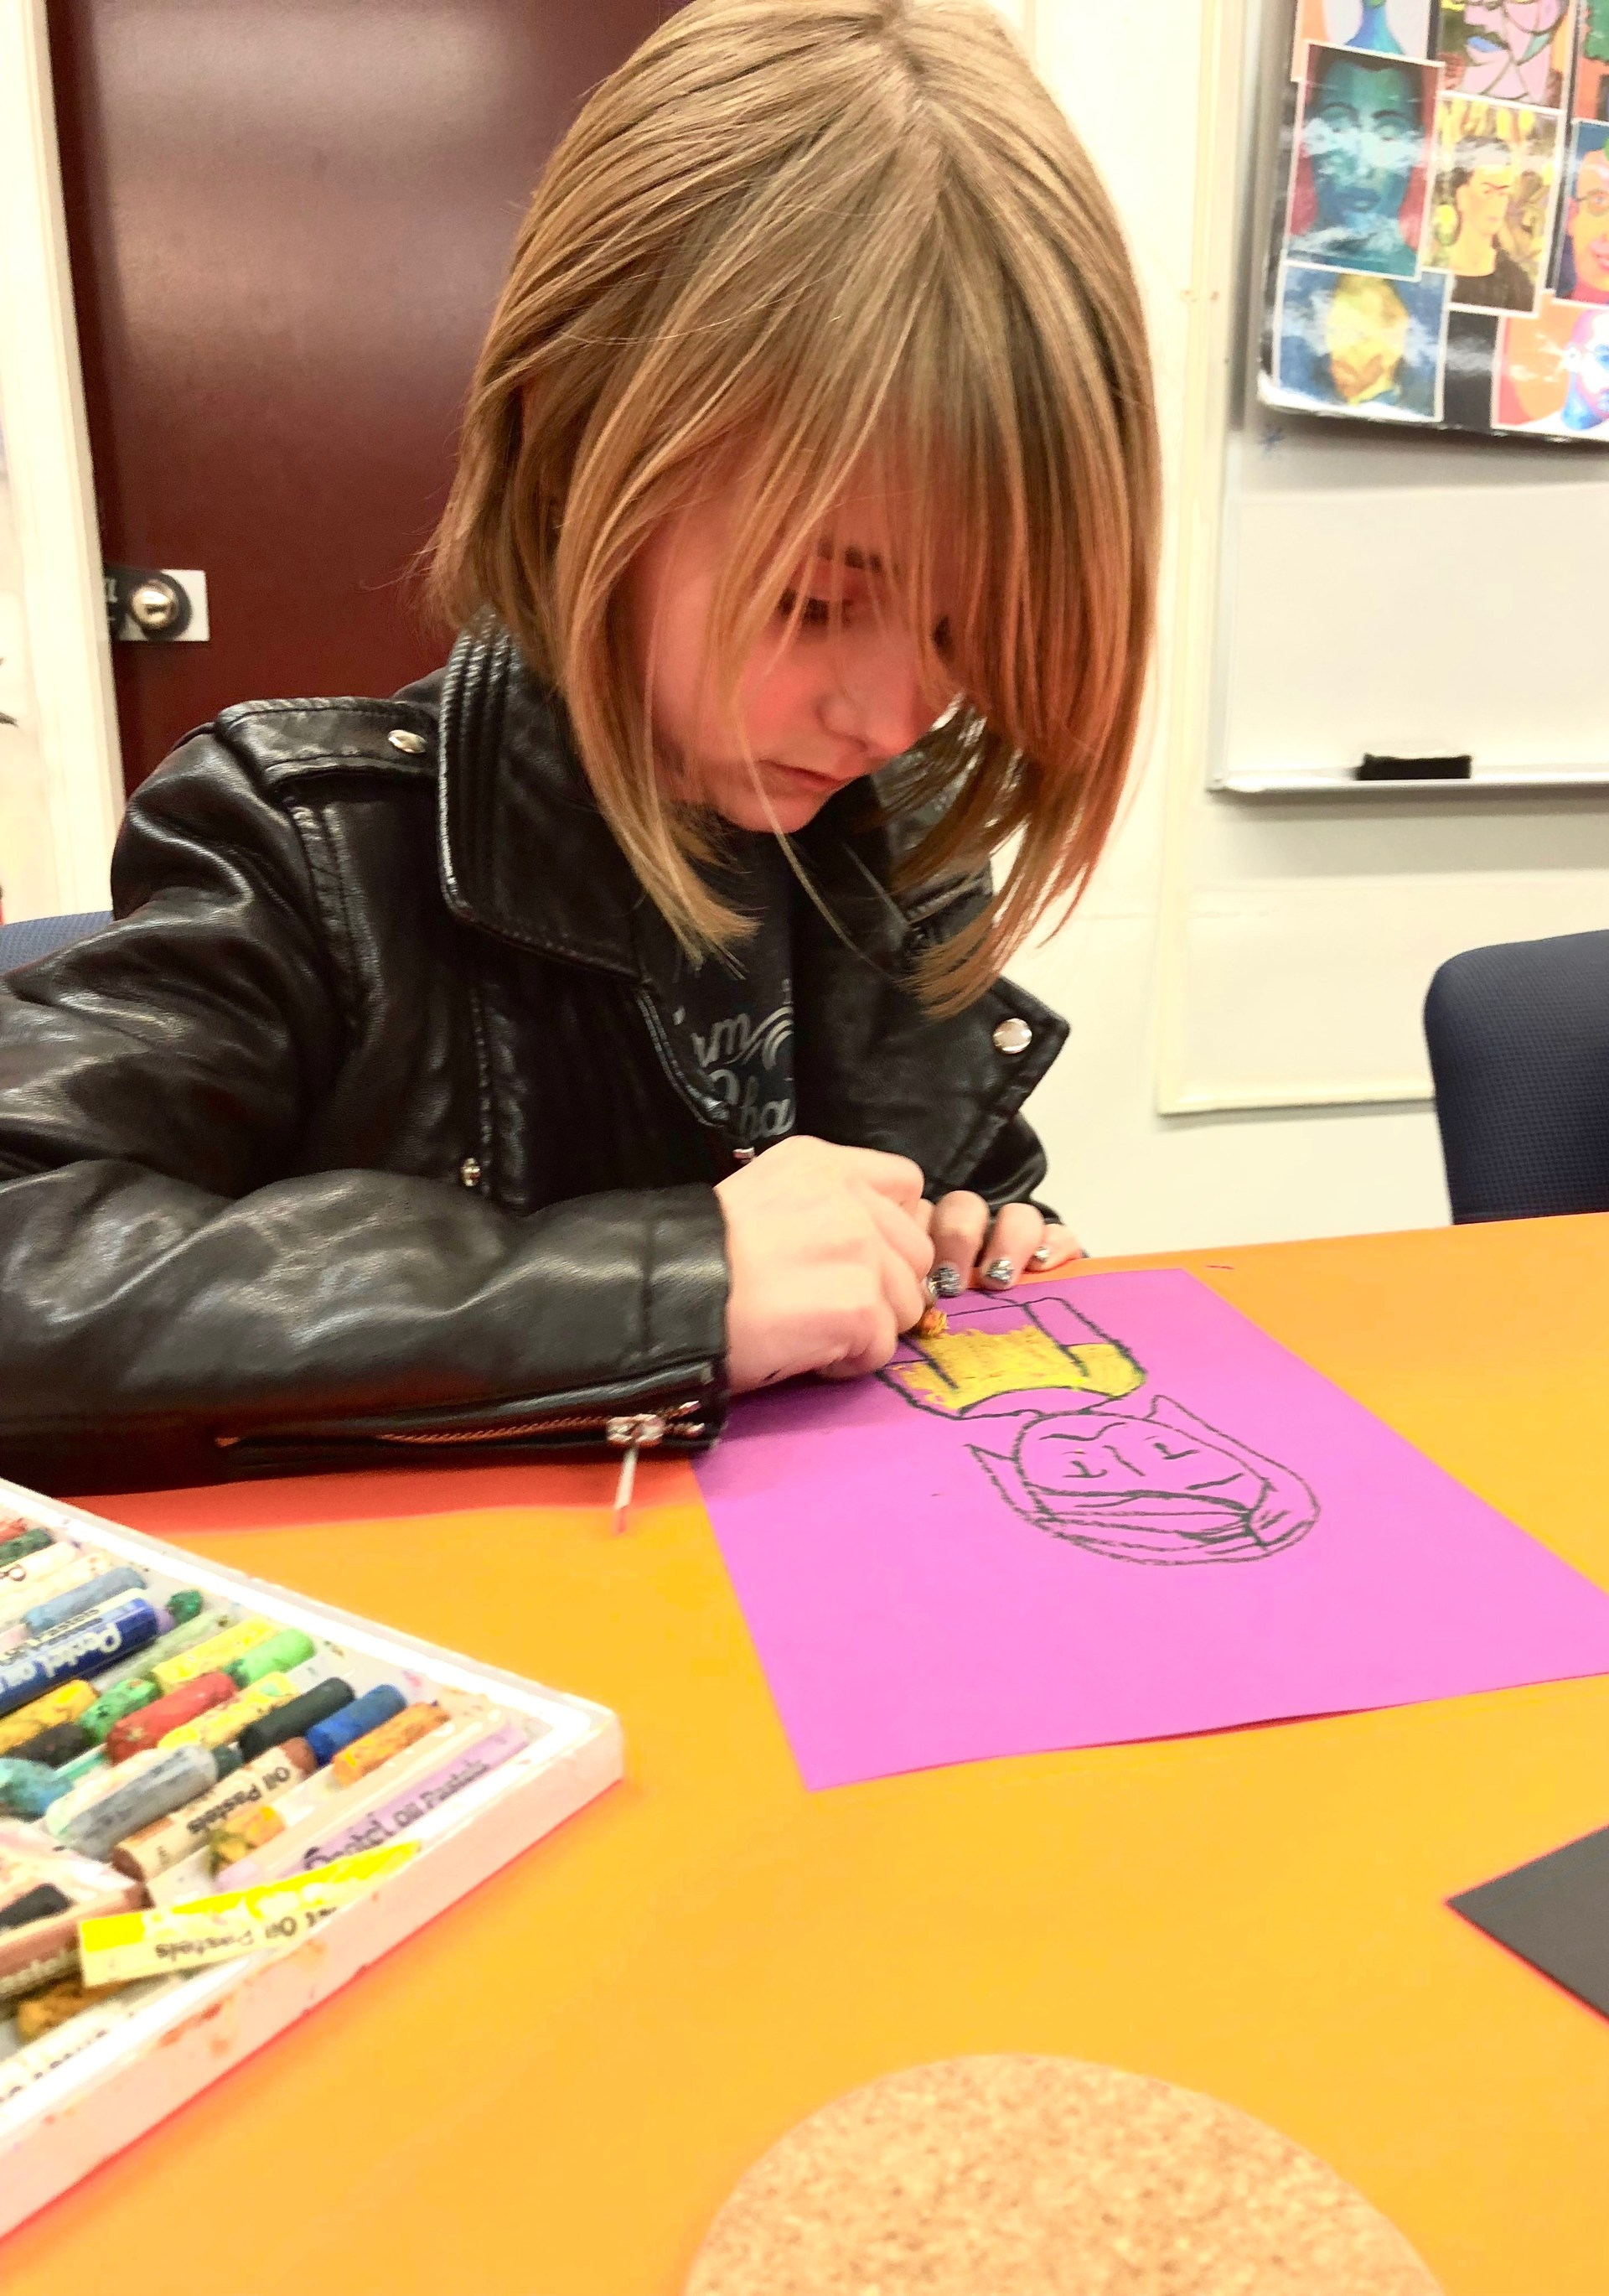 A girl using oil pastels to create a self-portrait.